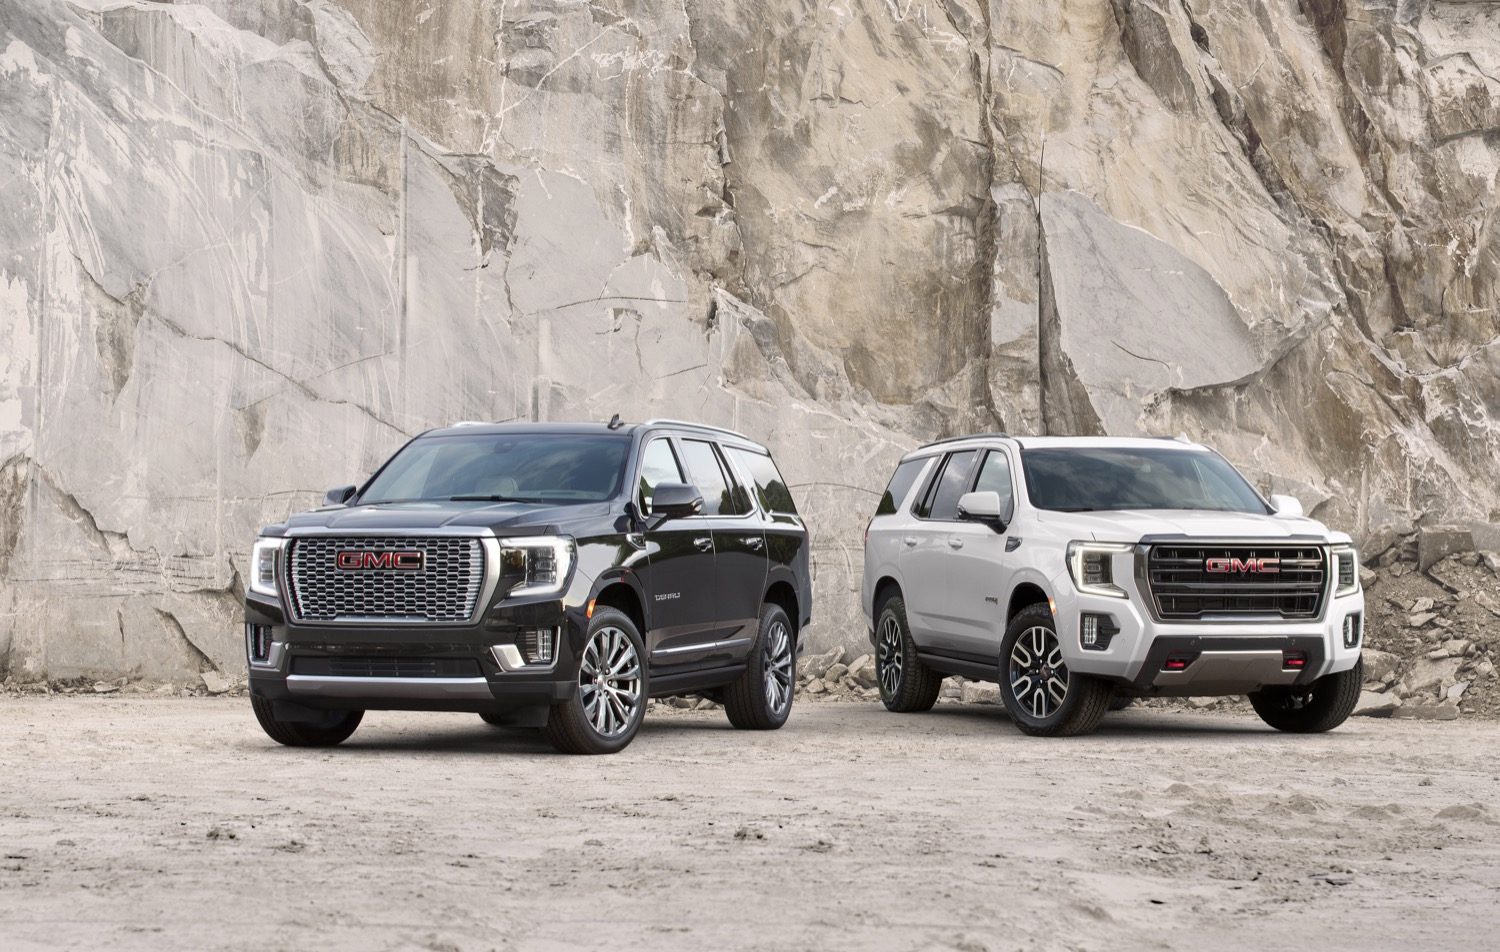 This Is The 2021 Gmc Yukon And Yukon Xl   Gm Authority New 2021 Buick Verano Upgrades, Towing Capacity, Ground Clearance